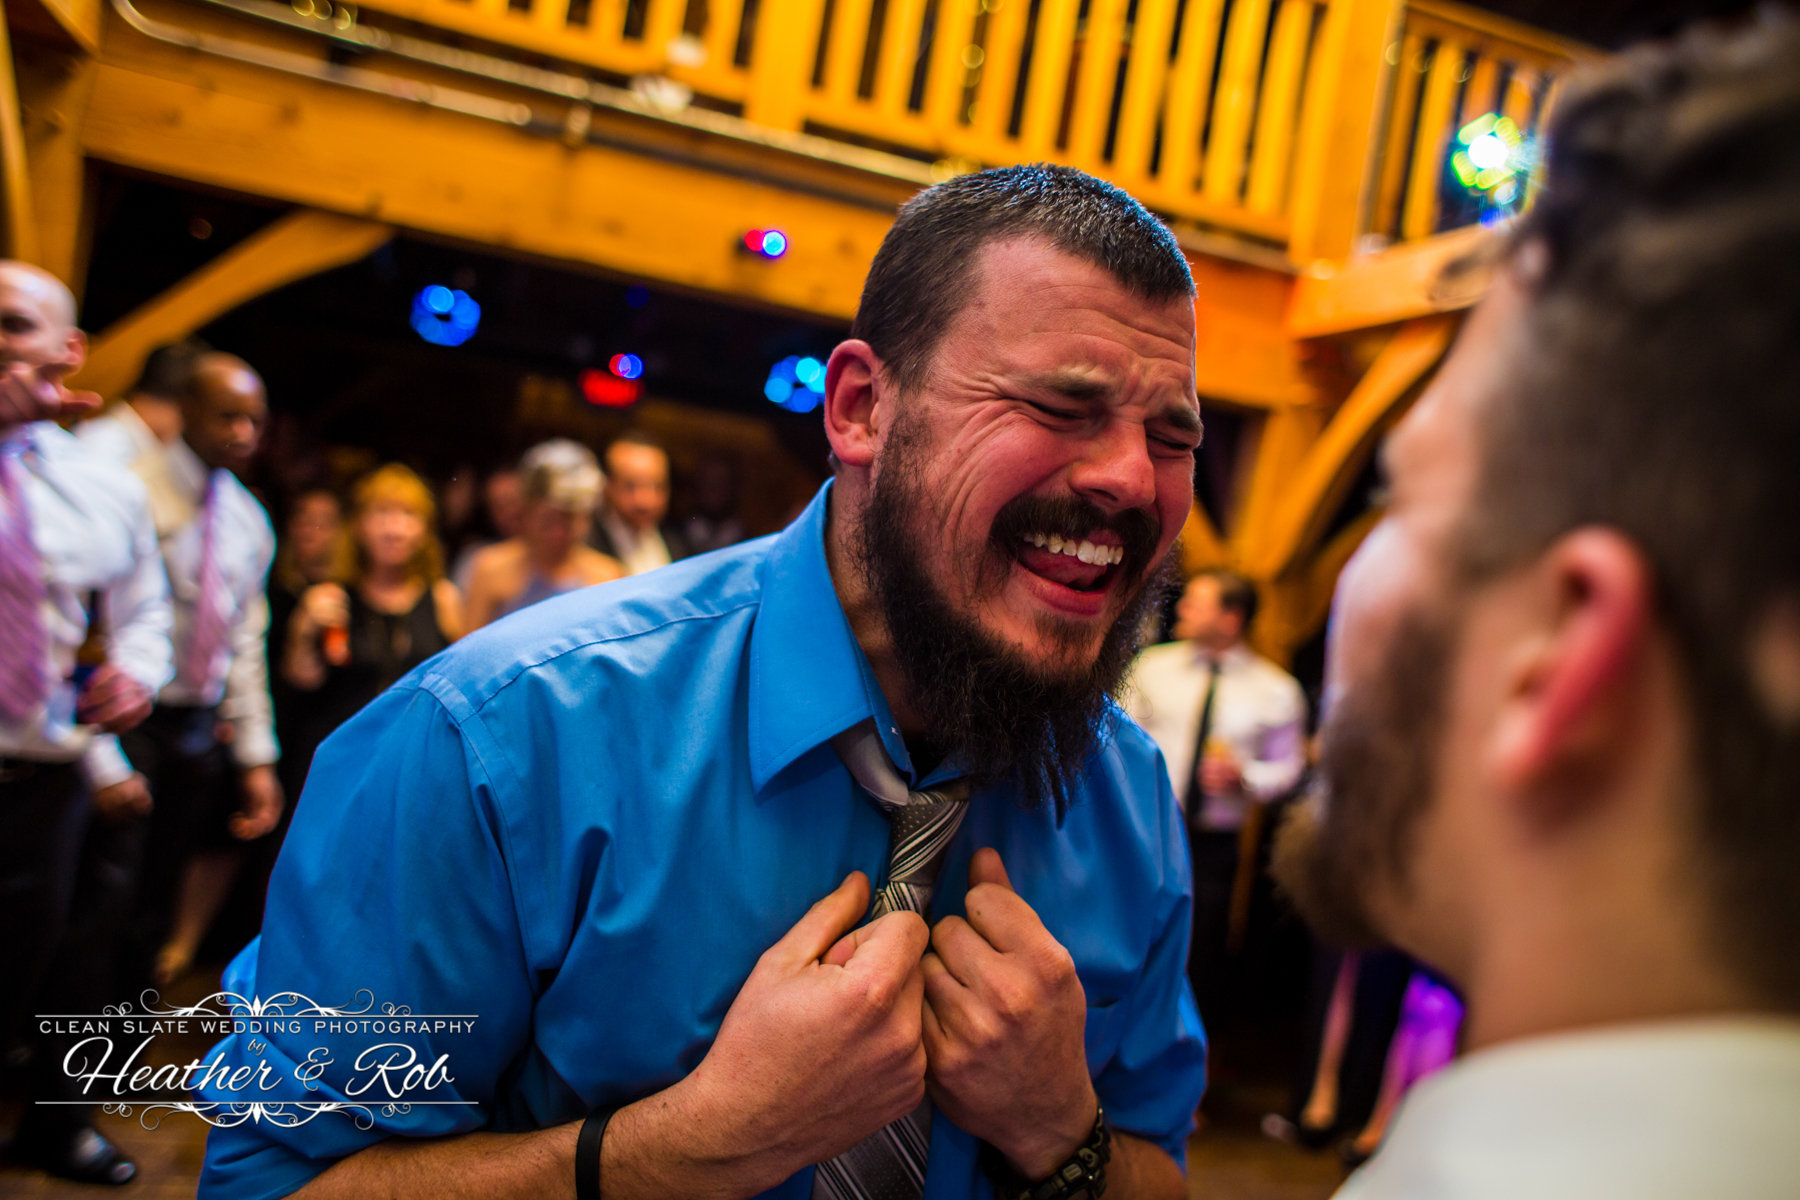 man in blue shirt singing with eyes closed on dance floor at wedding